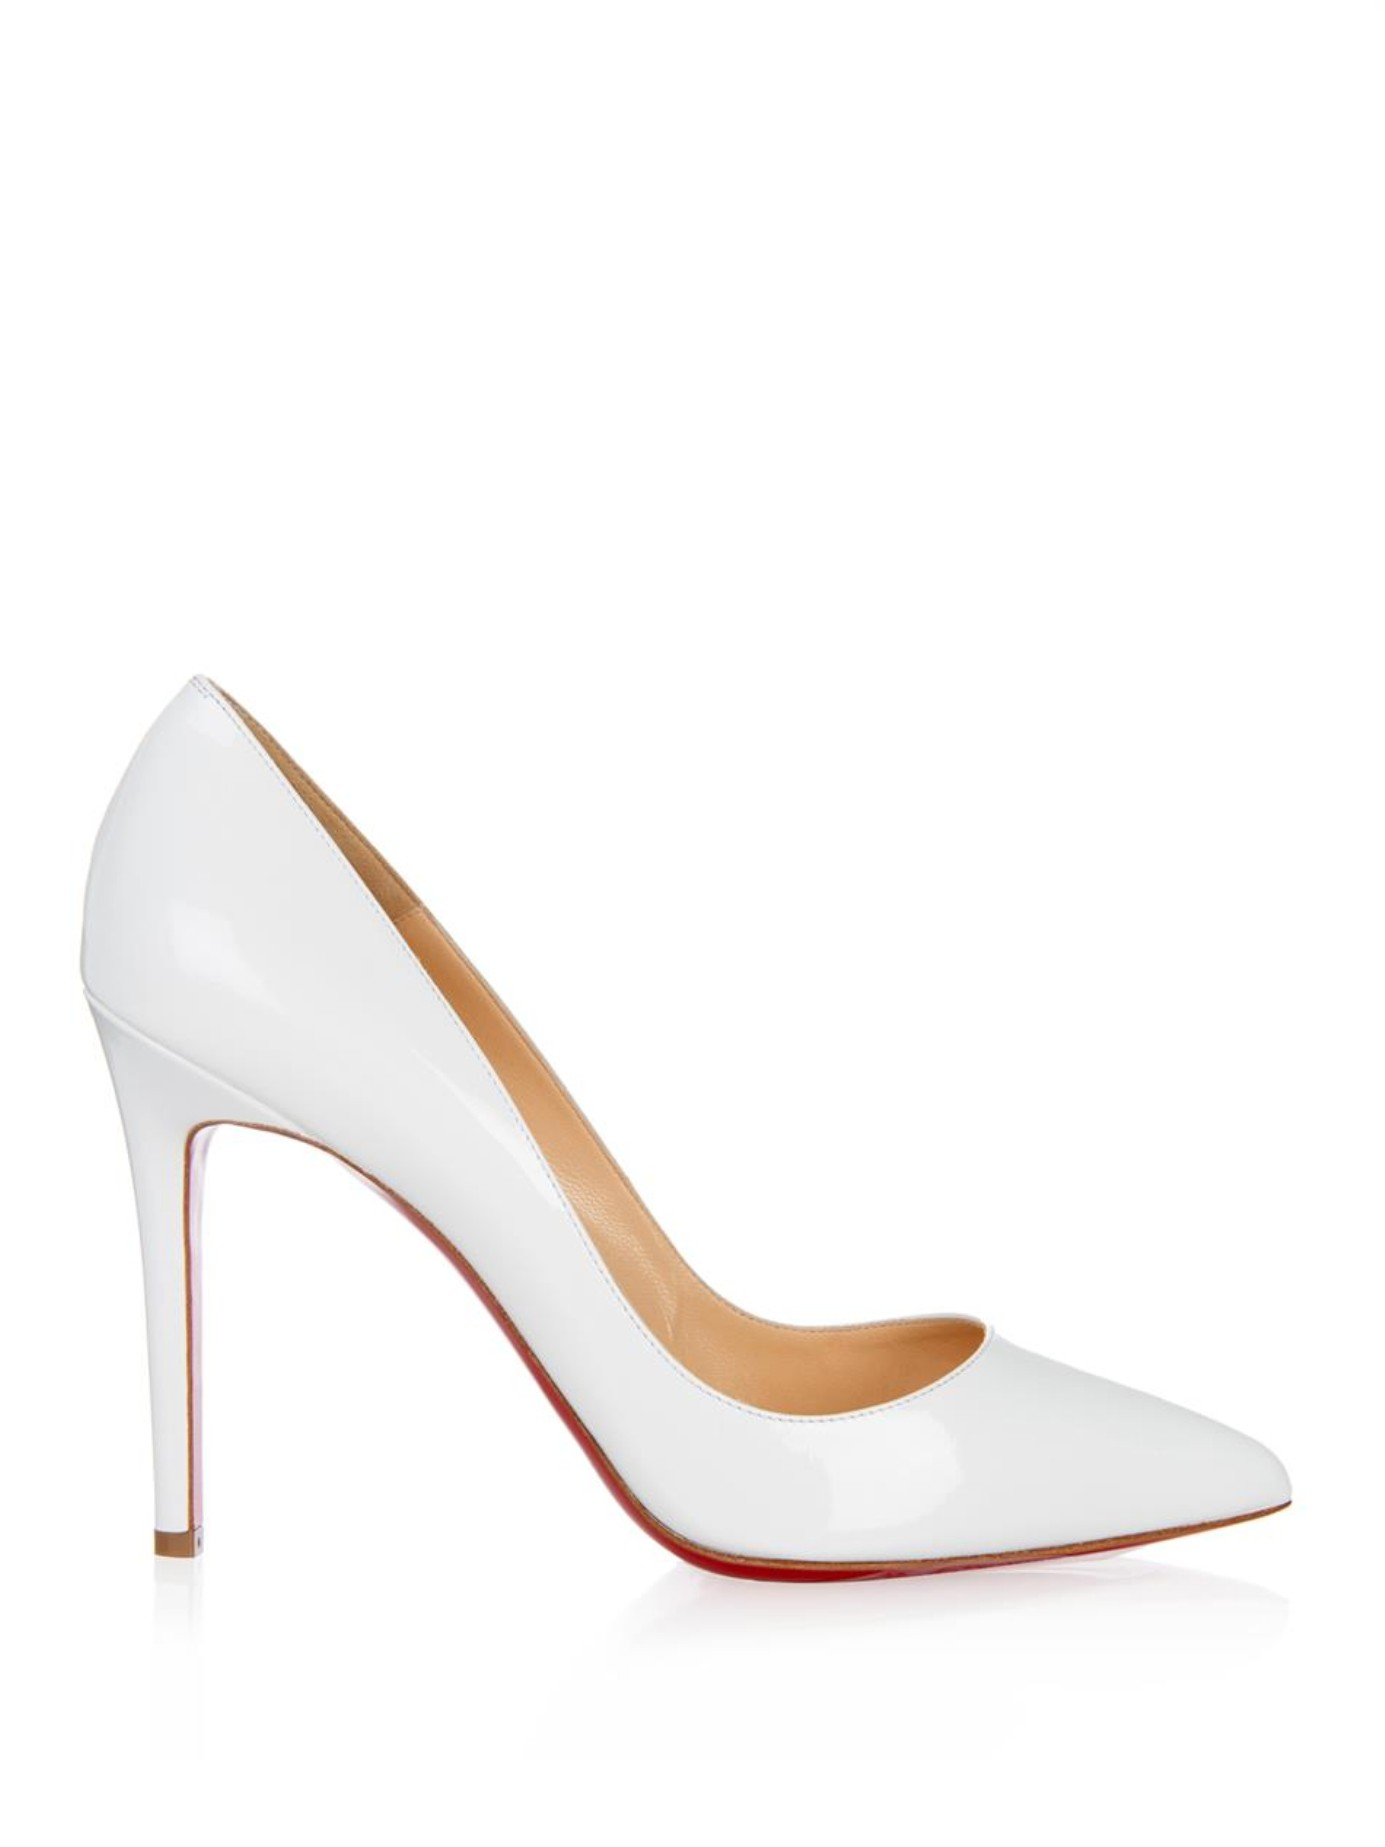 Lyst - Christian Louboutin Pigalle 100Mm Patent-Leather Pumps In White